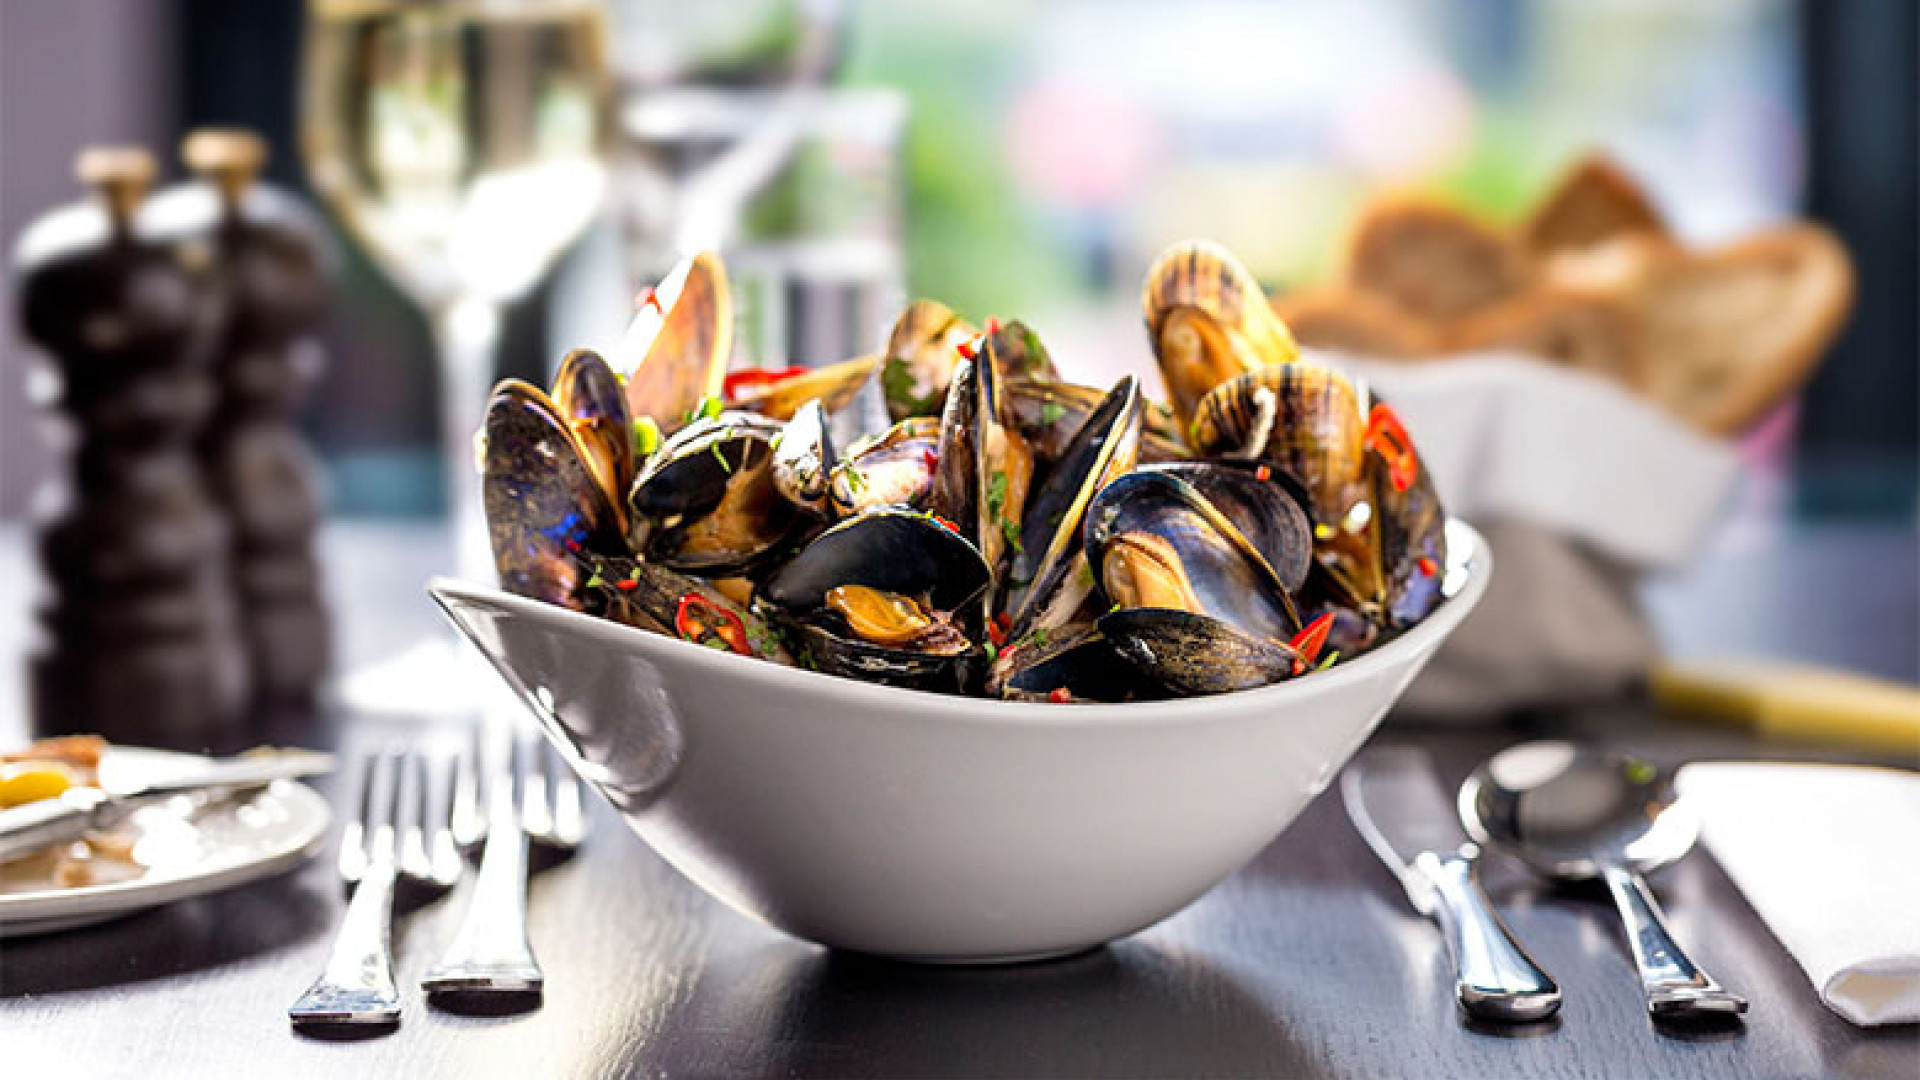 Smoked moules marinière at Blackwood's